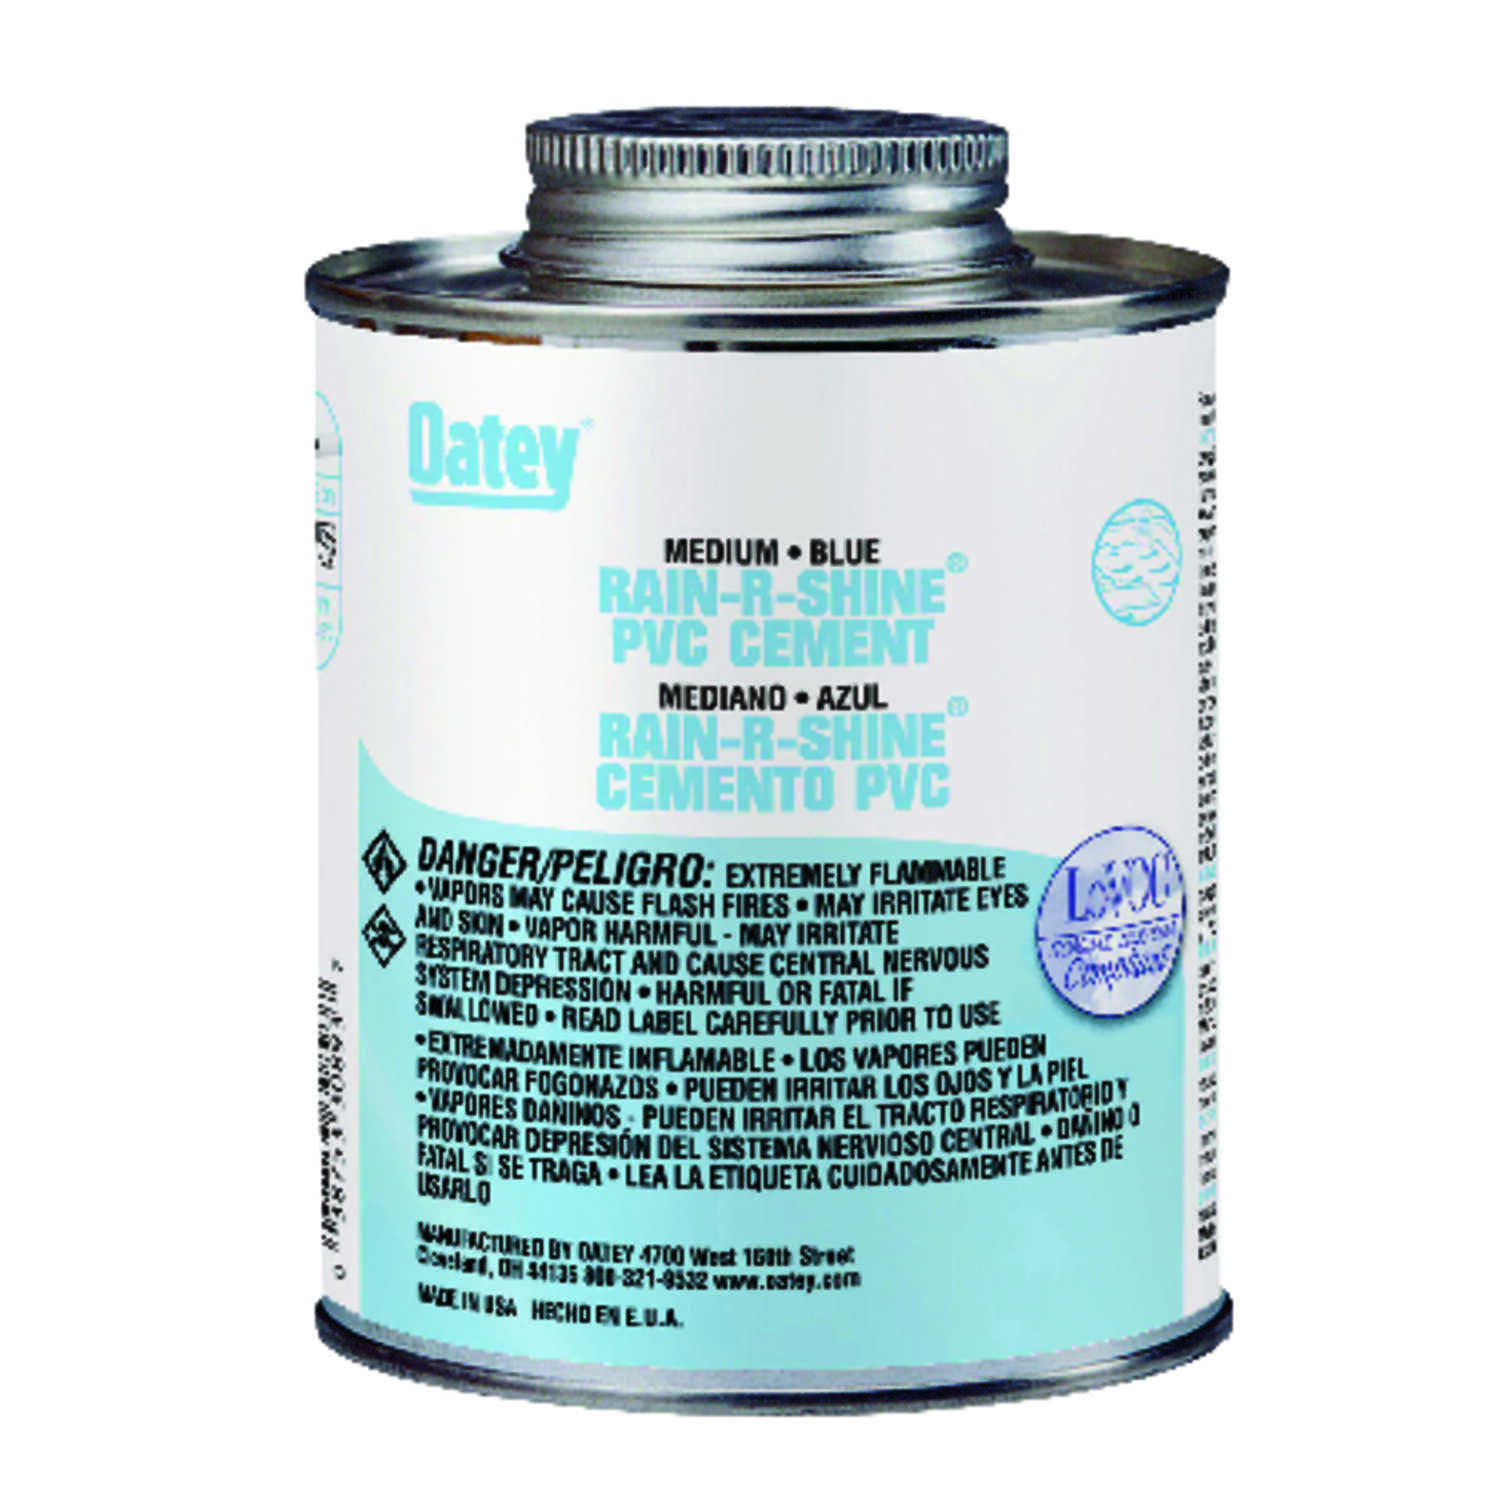 Oatey Rain-R-Shine Blue Cement For PVC 32 oz  - Ace Hardware